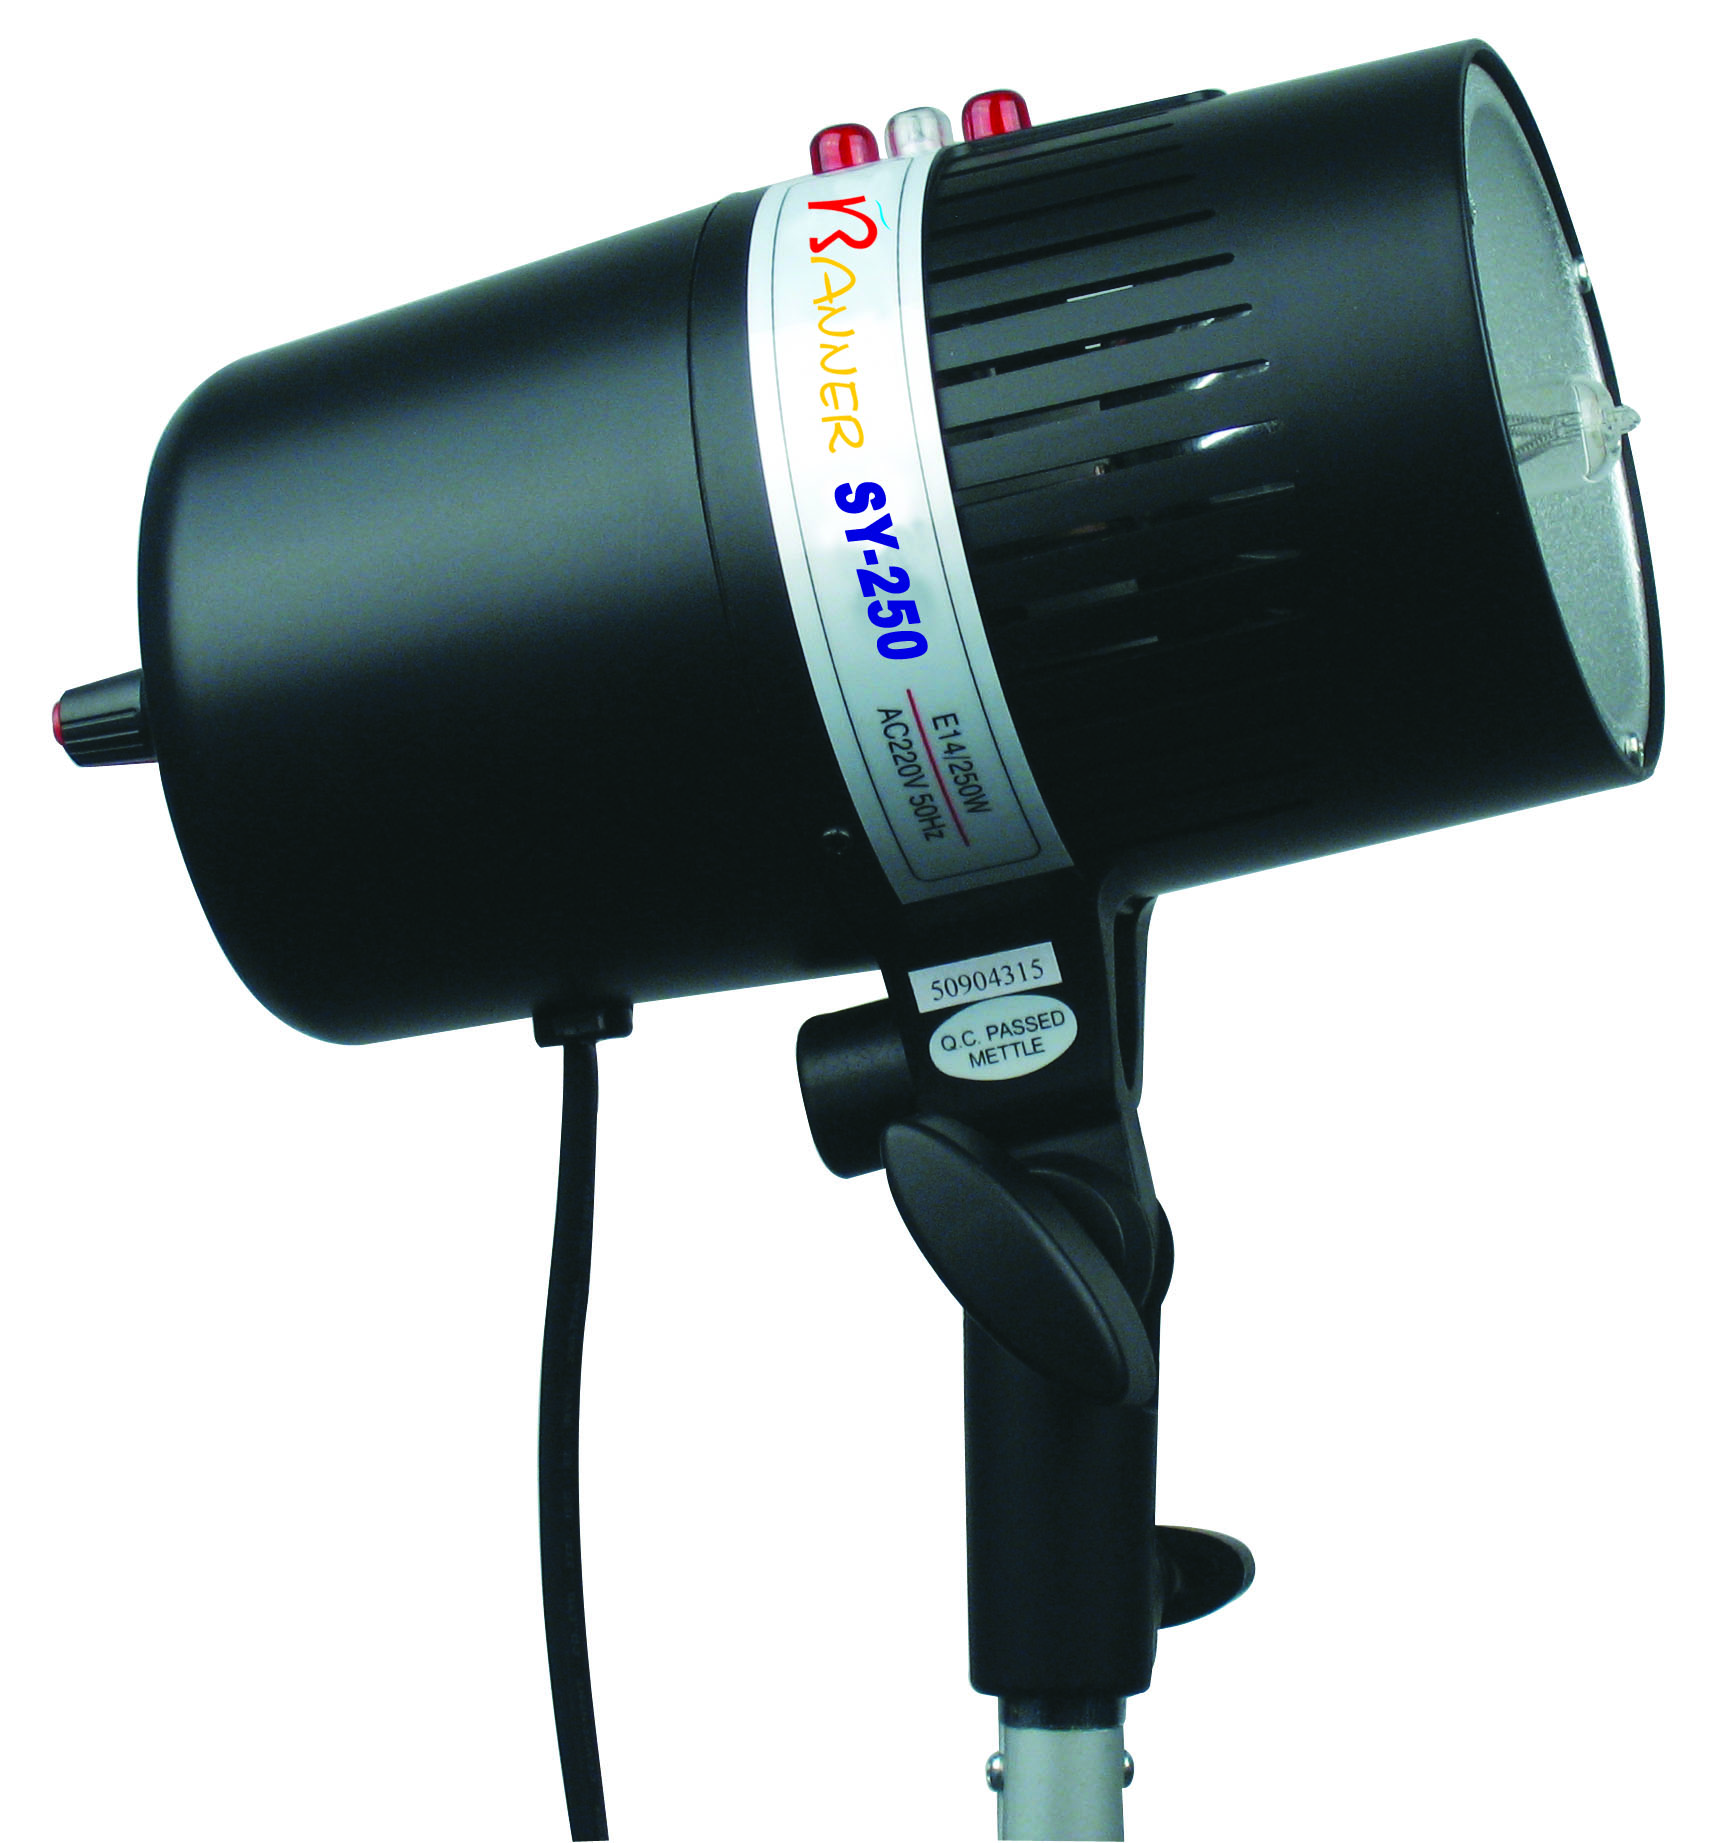 Portable strobe light for photography